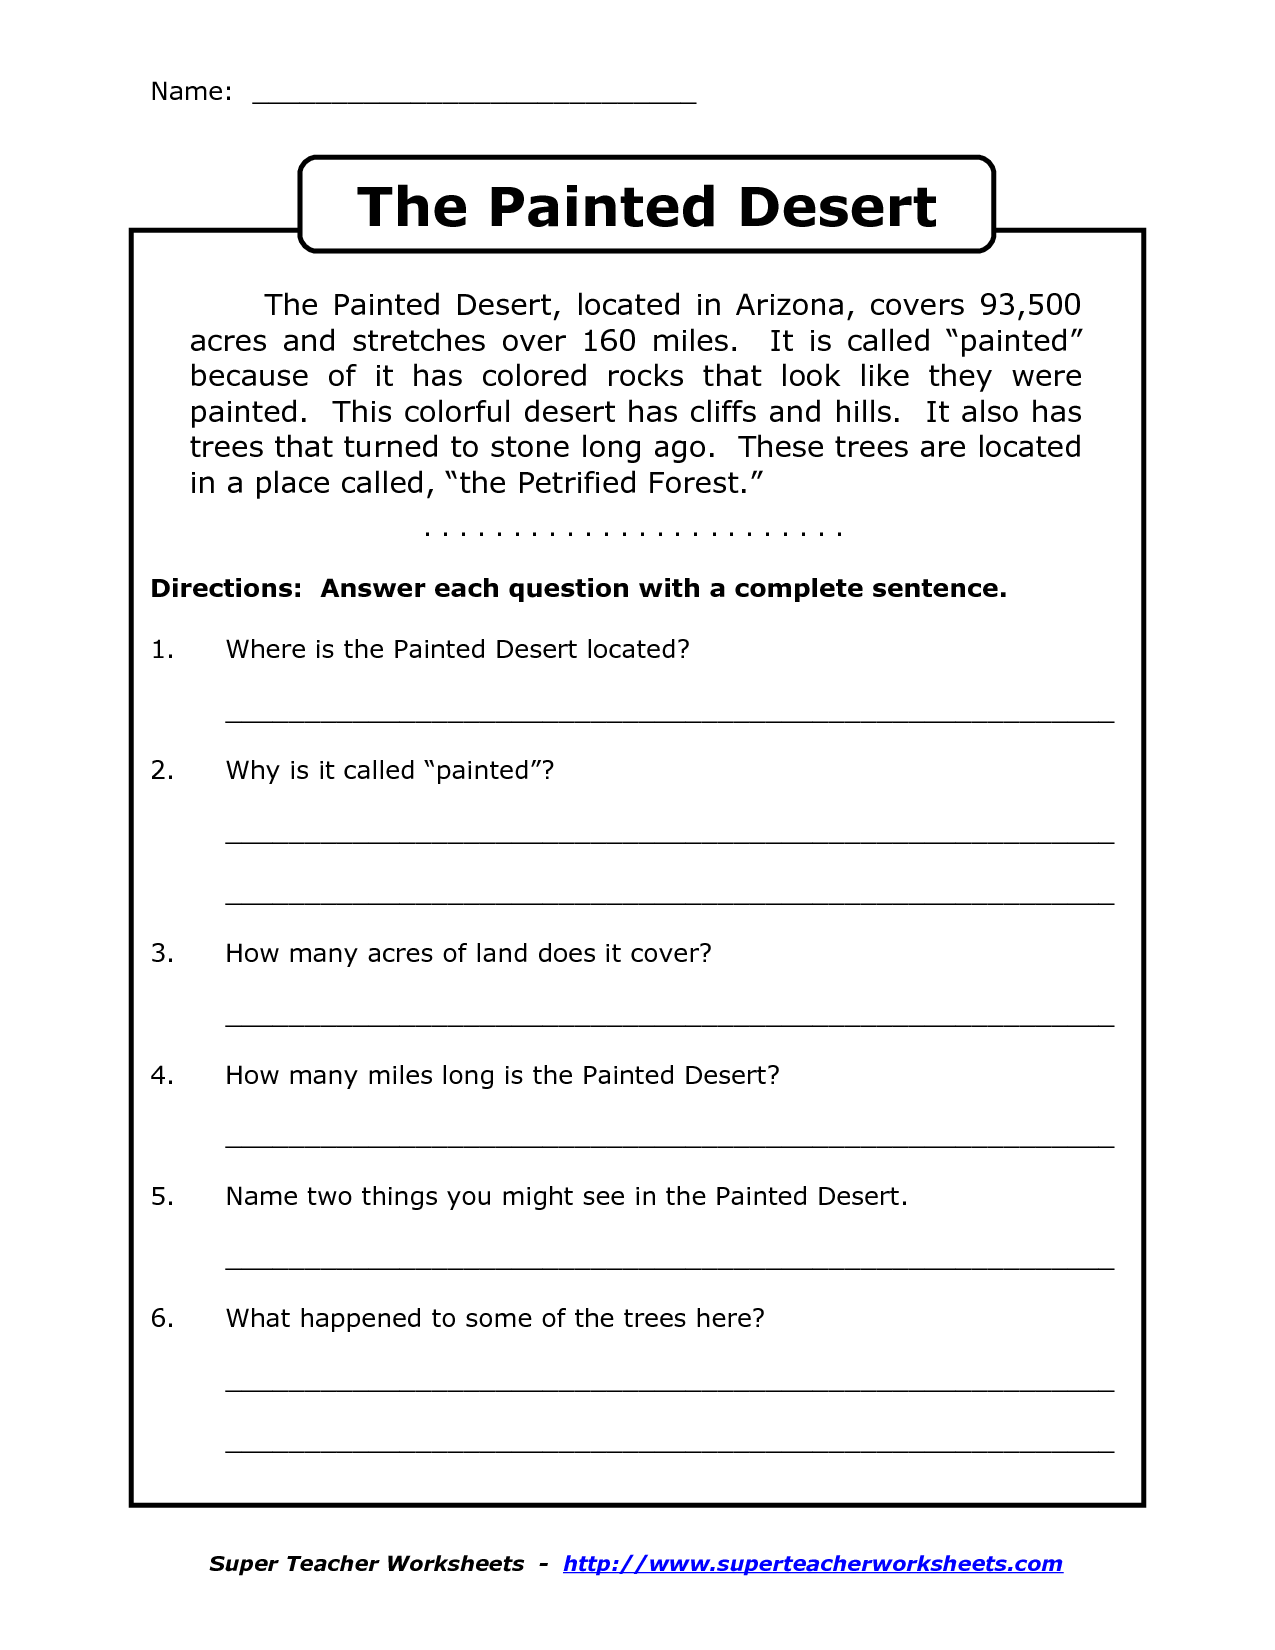 worksheet Free Comprehension Worksheets For Grade 3 reading worksheets for 4th grade comprehension 3 name the painted desert